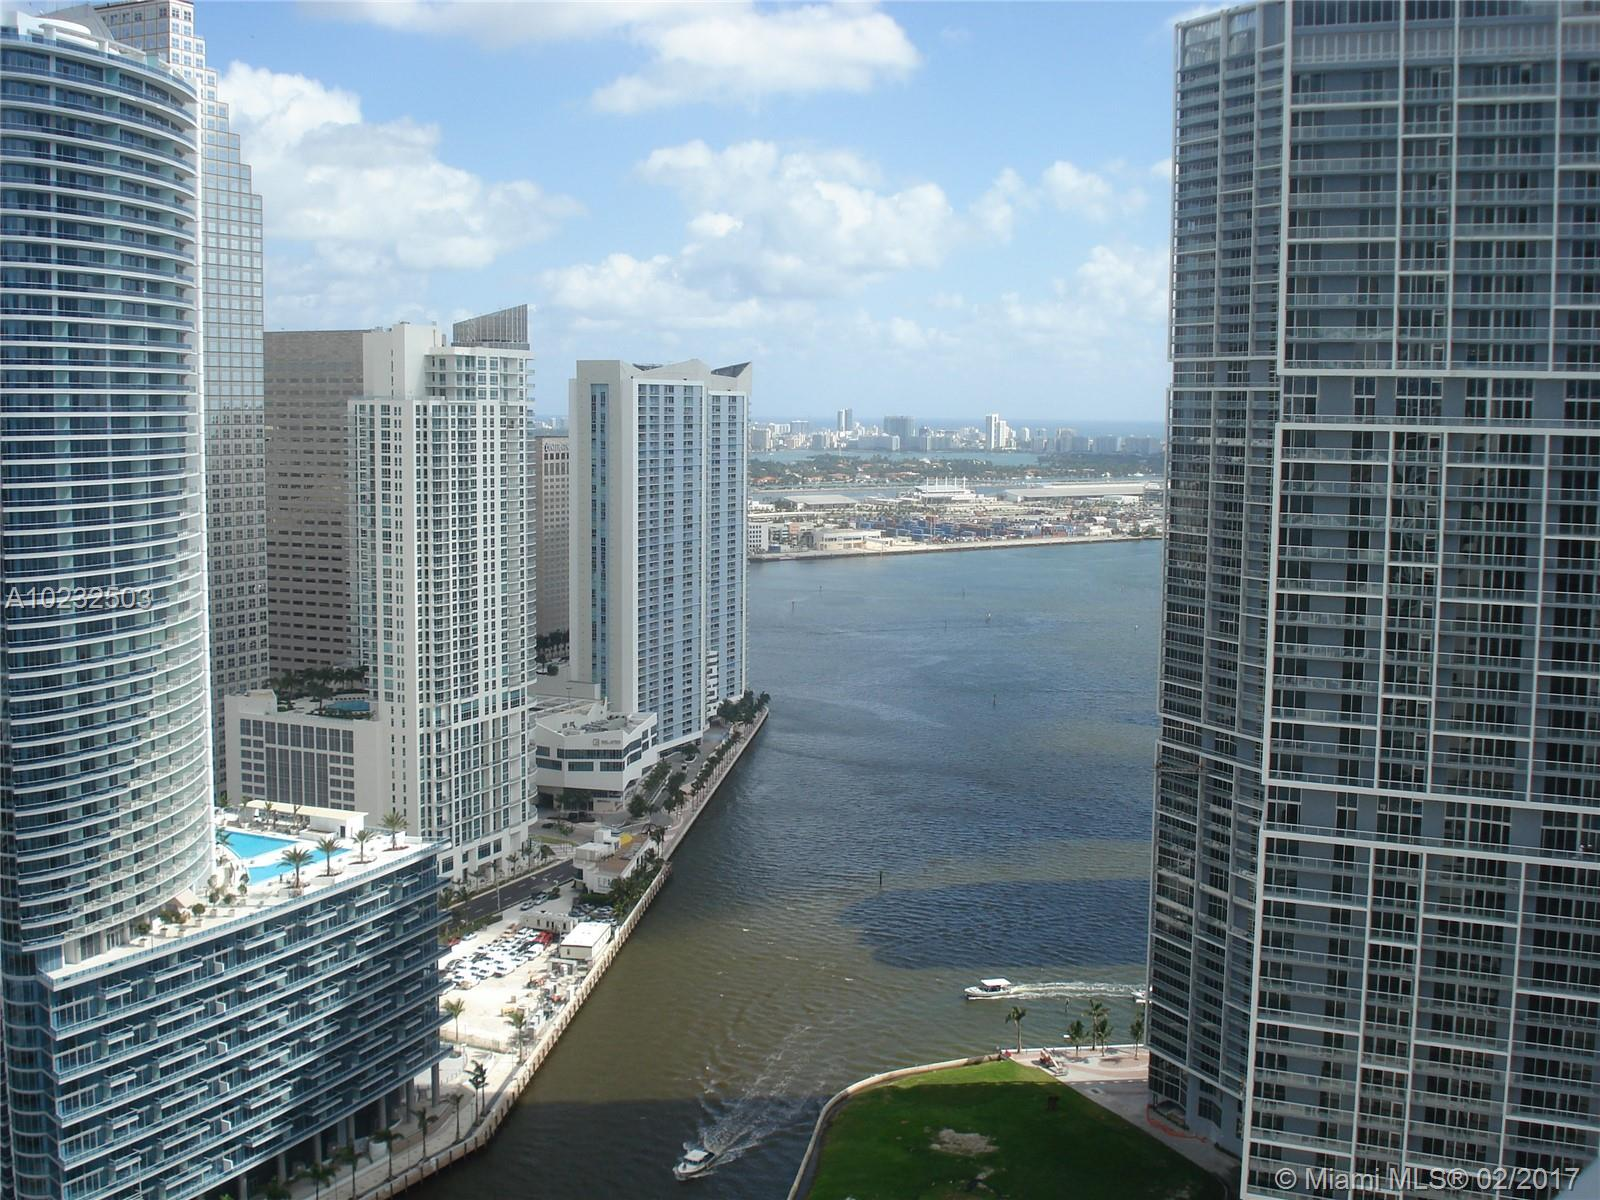 Great middle PH with high ceilings , split plan, nice view of Miami River and downtown skylight. New laminated wood floors!  Centrally located within walking distance to people mover station, Brickell financial center, restaurants and the new Brickell Centre 500 Brickell Condominium has all amenities, two pools, gym, party room, etc. 24 hours lobby attendant and valet parking. Unit is leased till 6/30/21 $2,750.00 monthly rent.